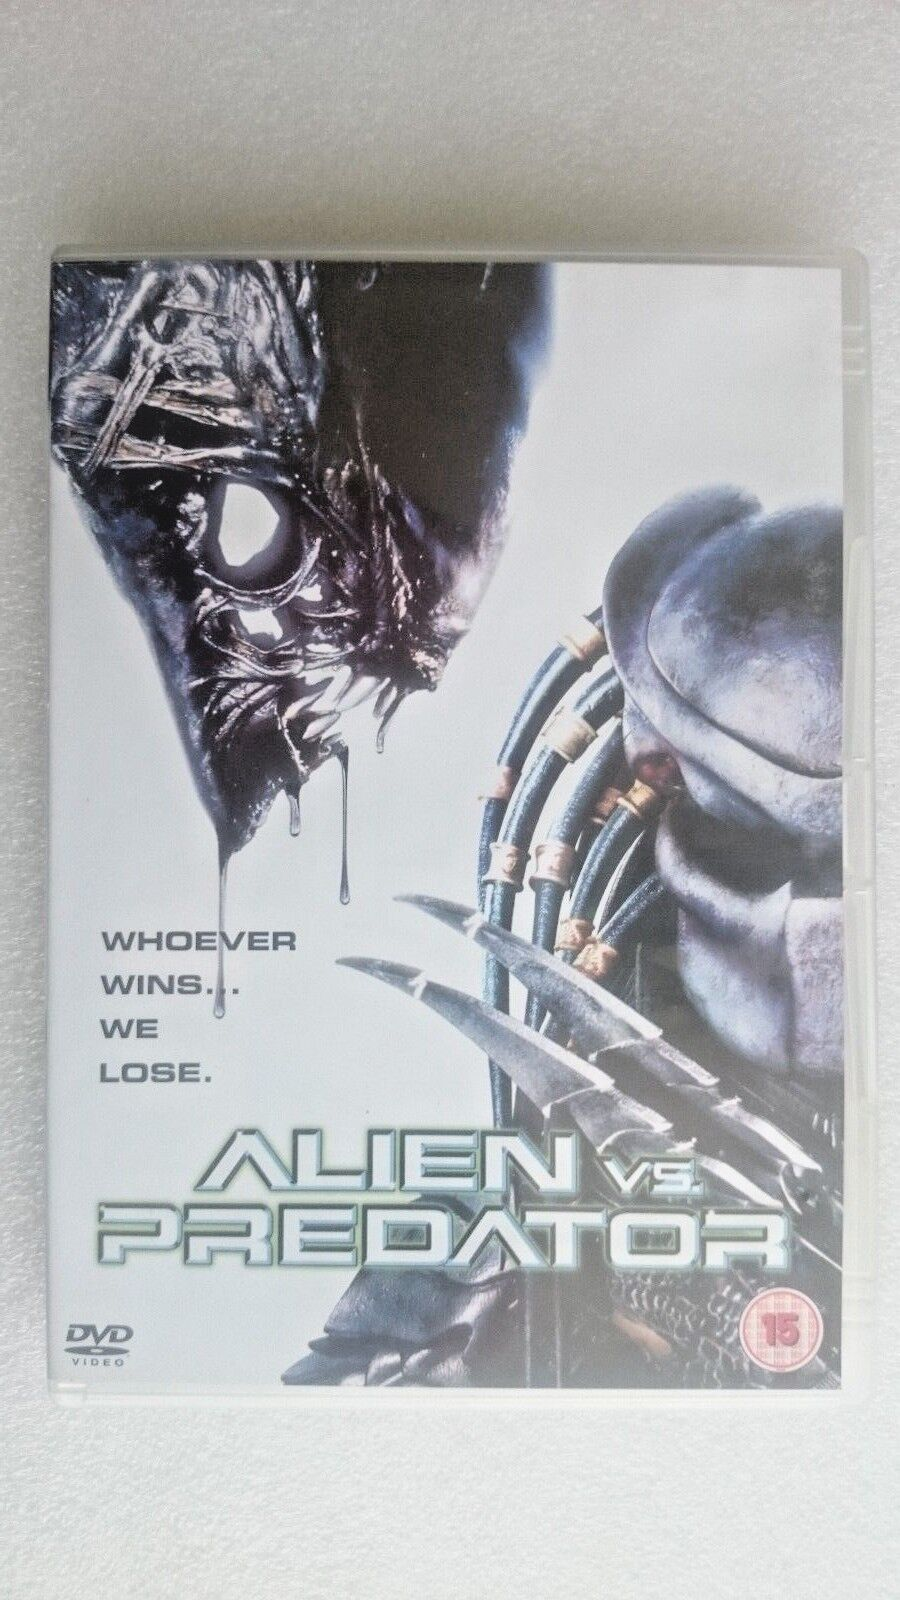 Alien Vs Predator (DVD, 2005)